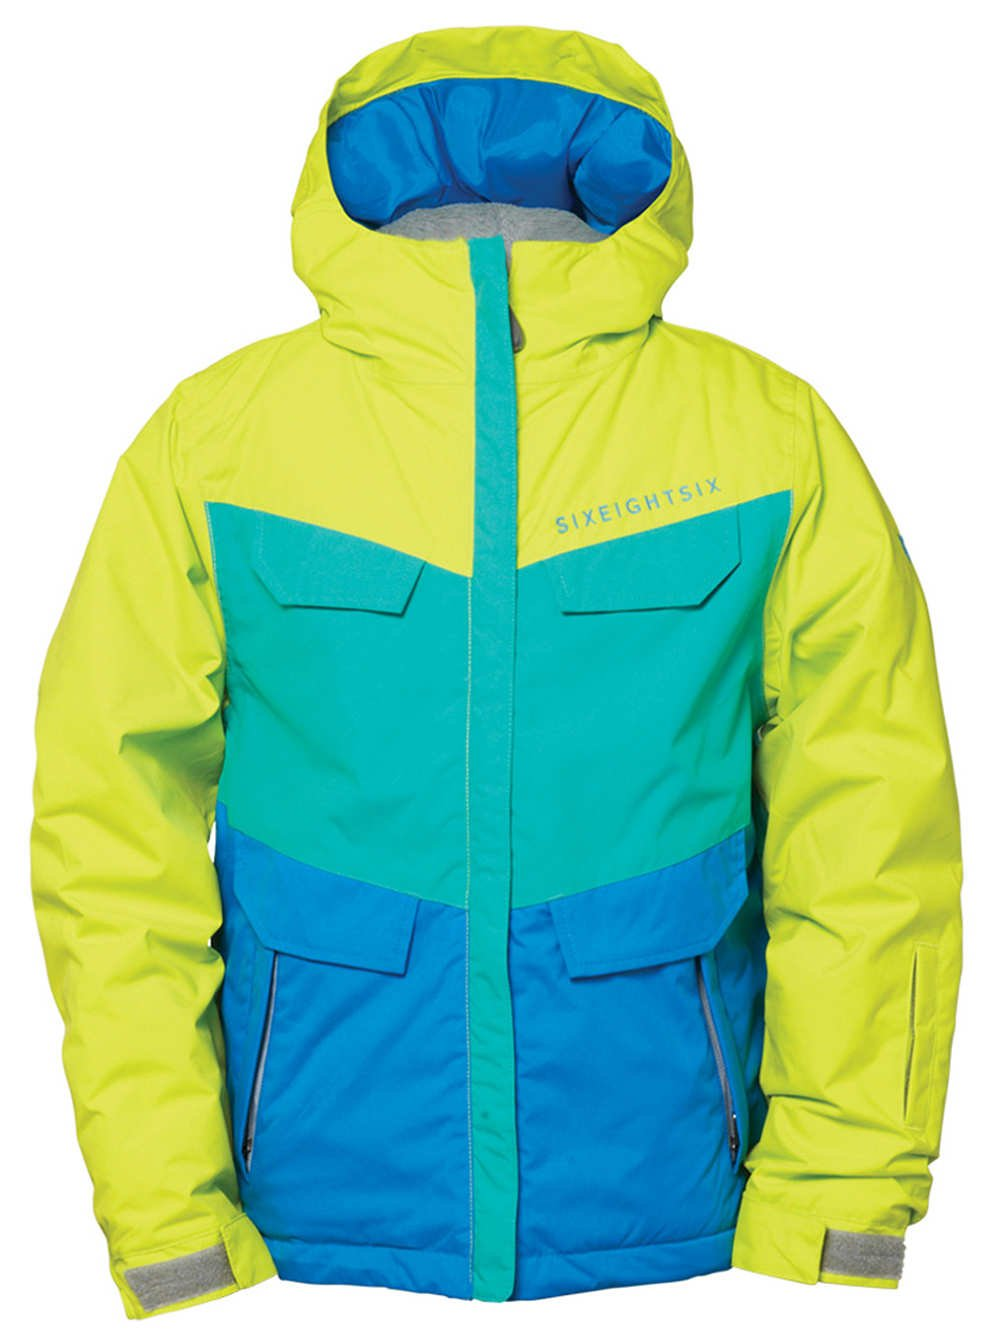 686 Authentic Annex Insulated Snowboard Jacket Pool Colorblock Sz M Girls